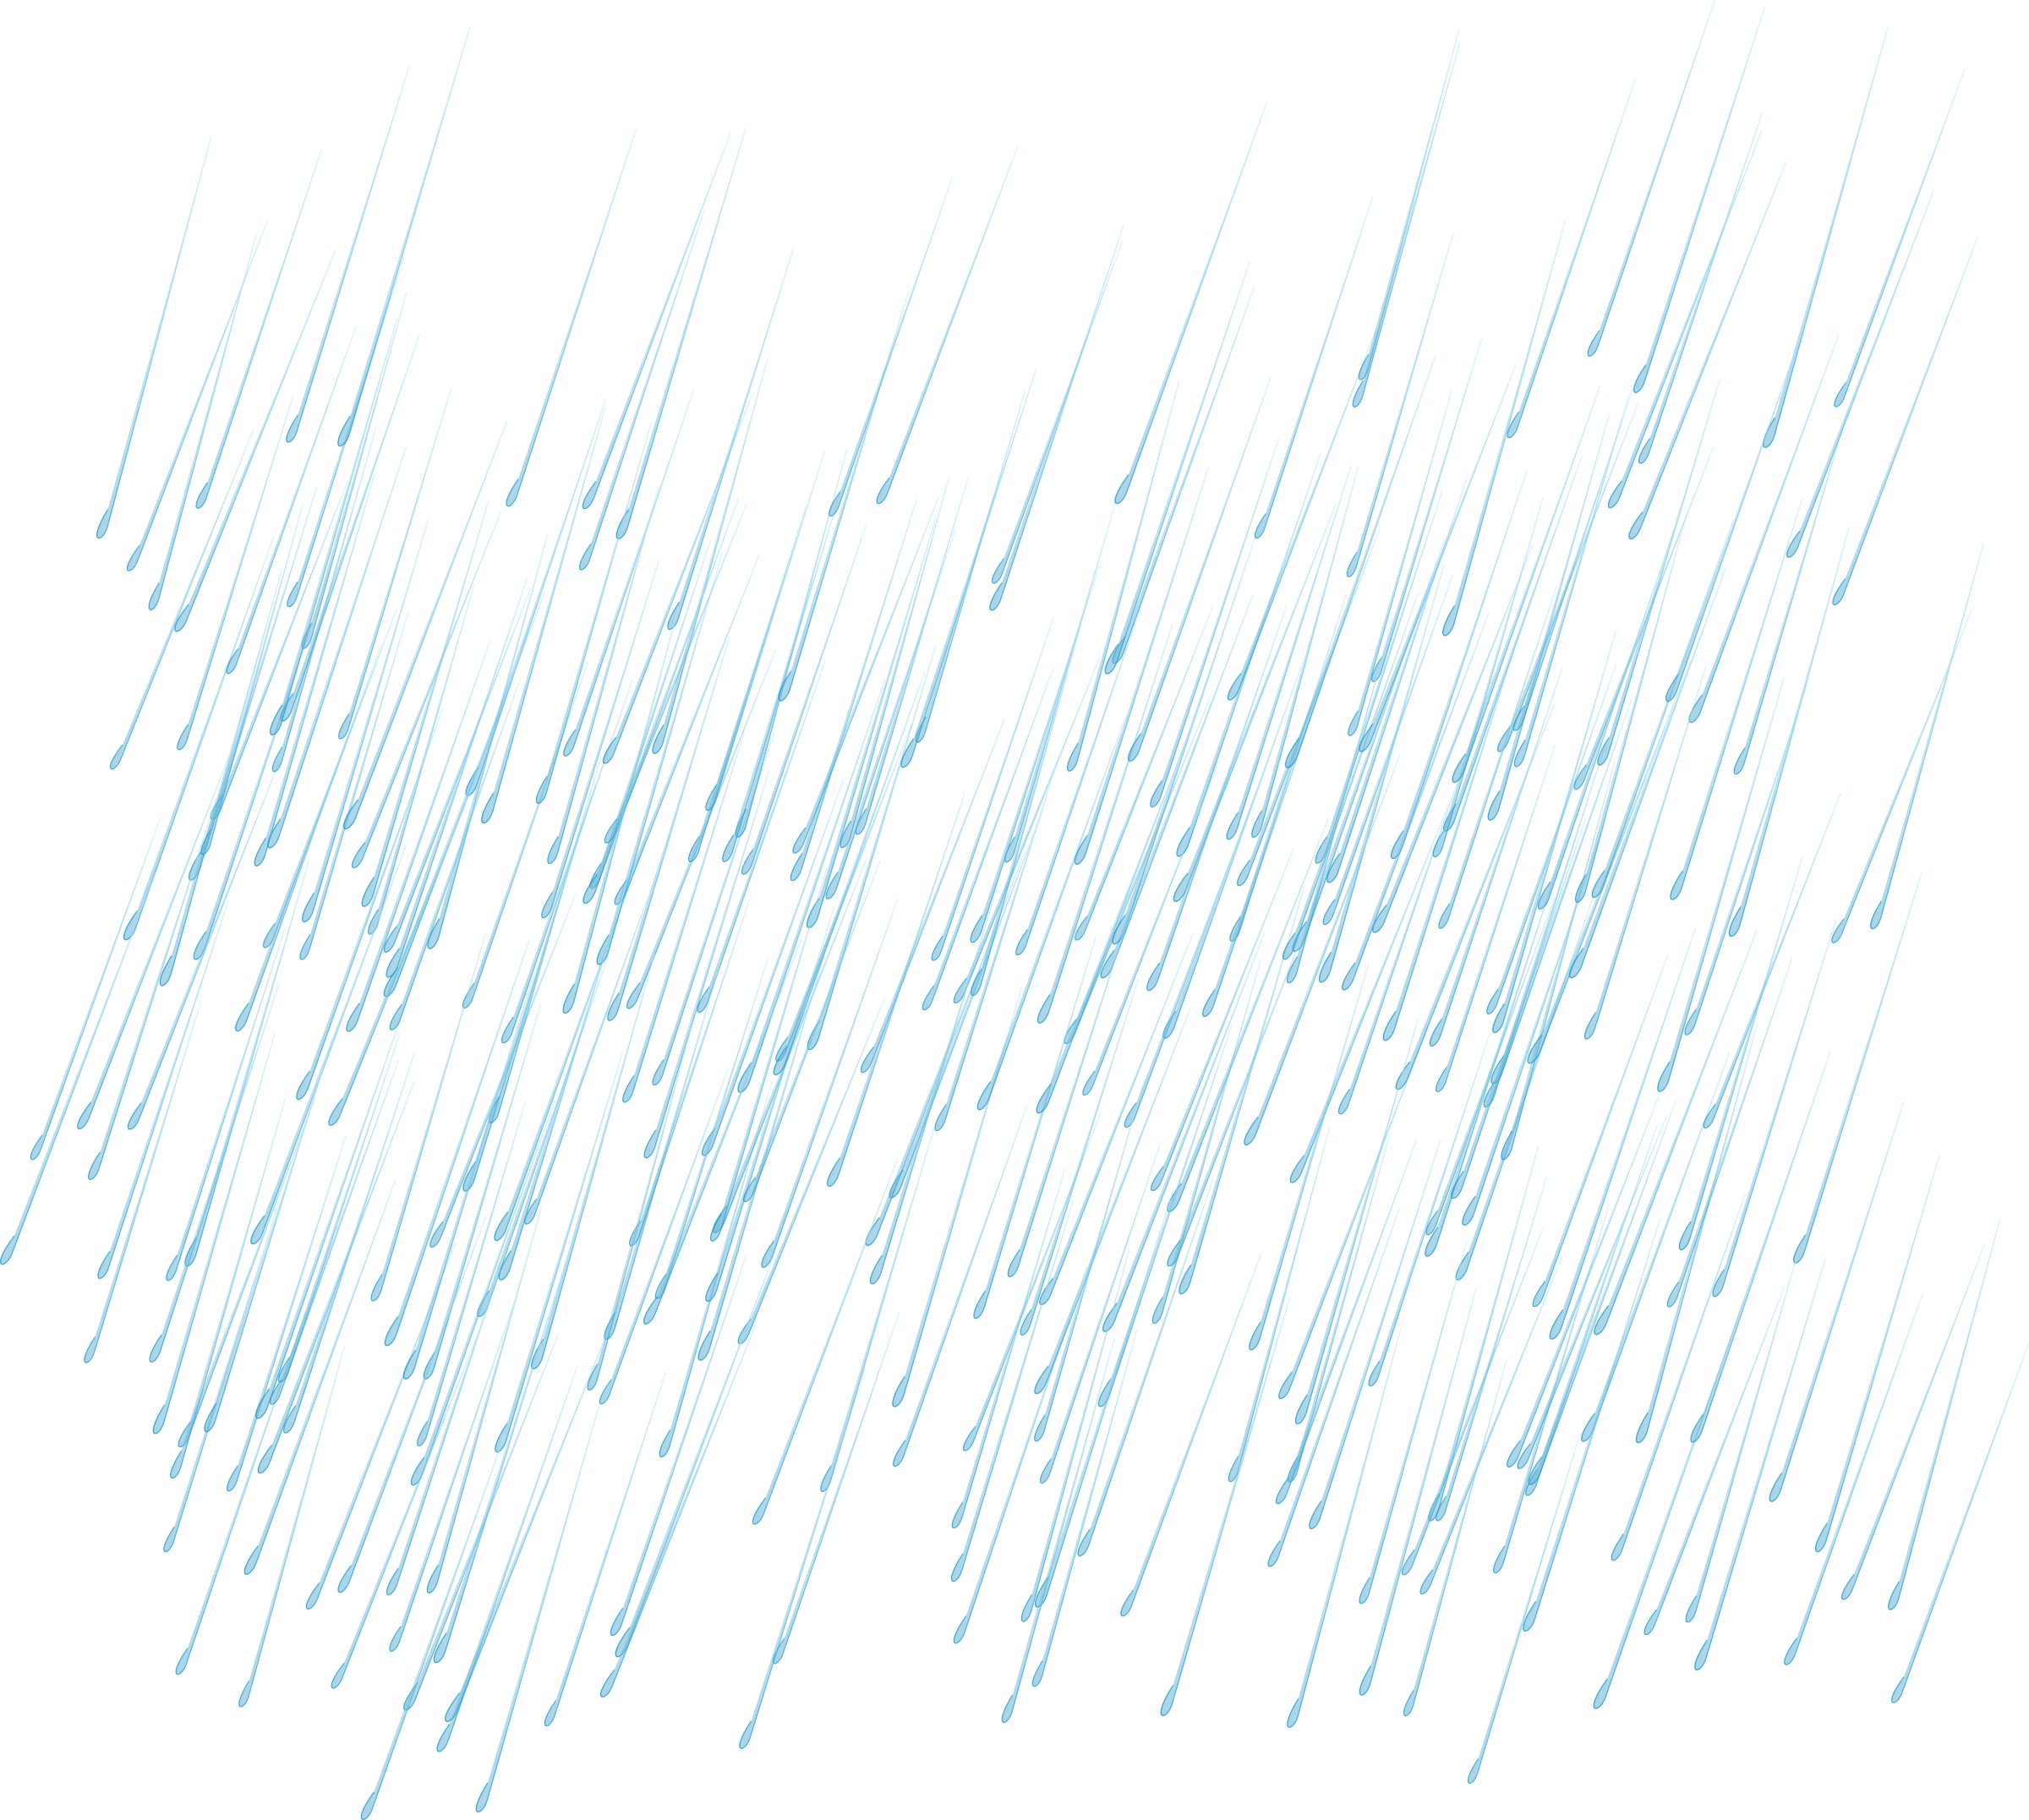 Rain png. Rainy transparent images pluspng